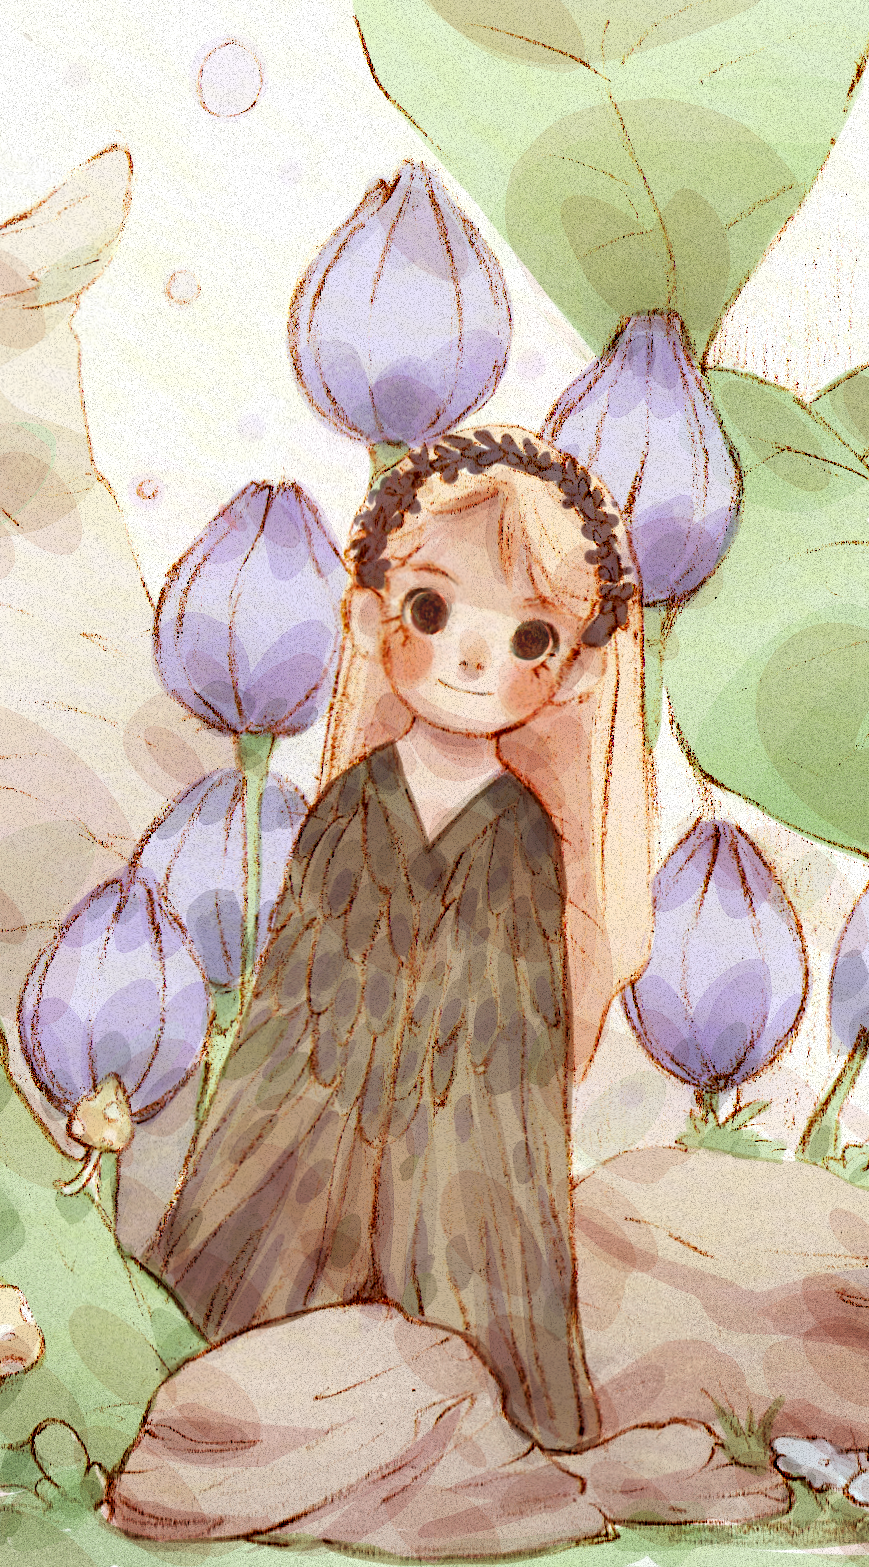 Little Girl in the Forrest